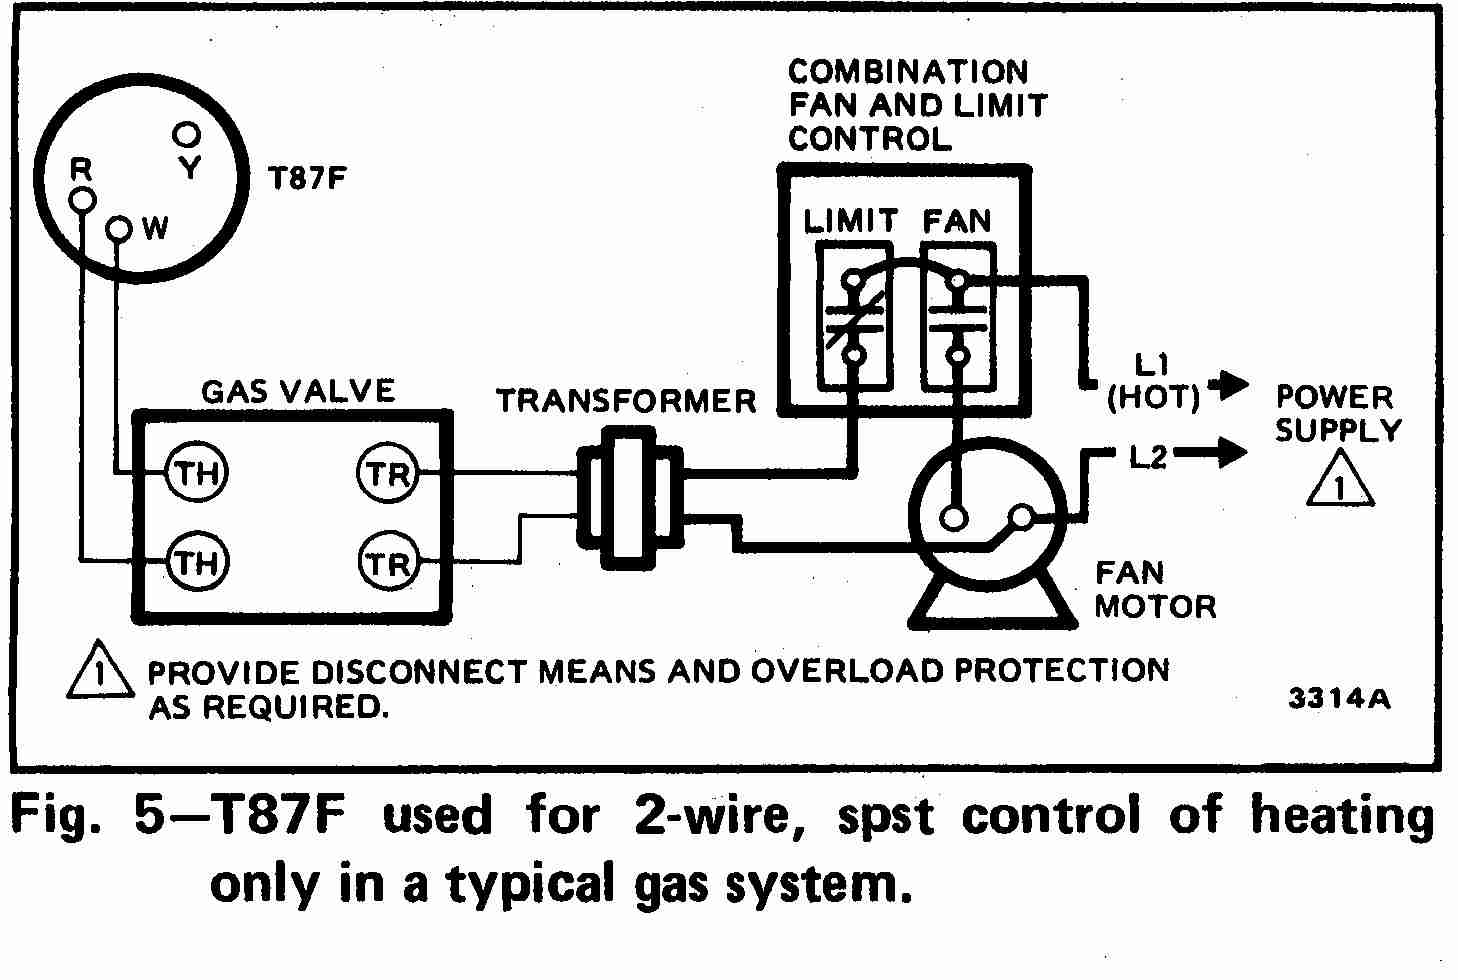 Ignition Switch Wiring Diagram 2001 Blazer furthermore 53r15a further Wiring Diagrams Boat Battery likewise Wiring Diagram Frigidaire Dryer further Thermostat Diagrams. on house fan timer